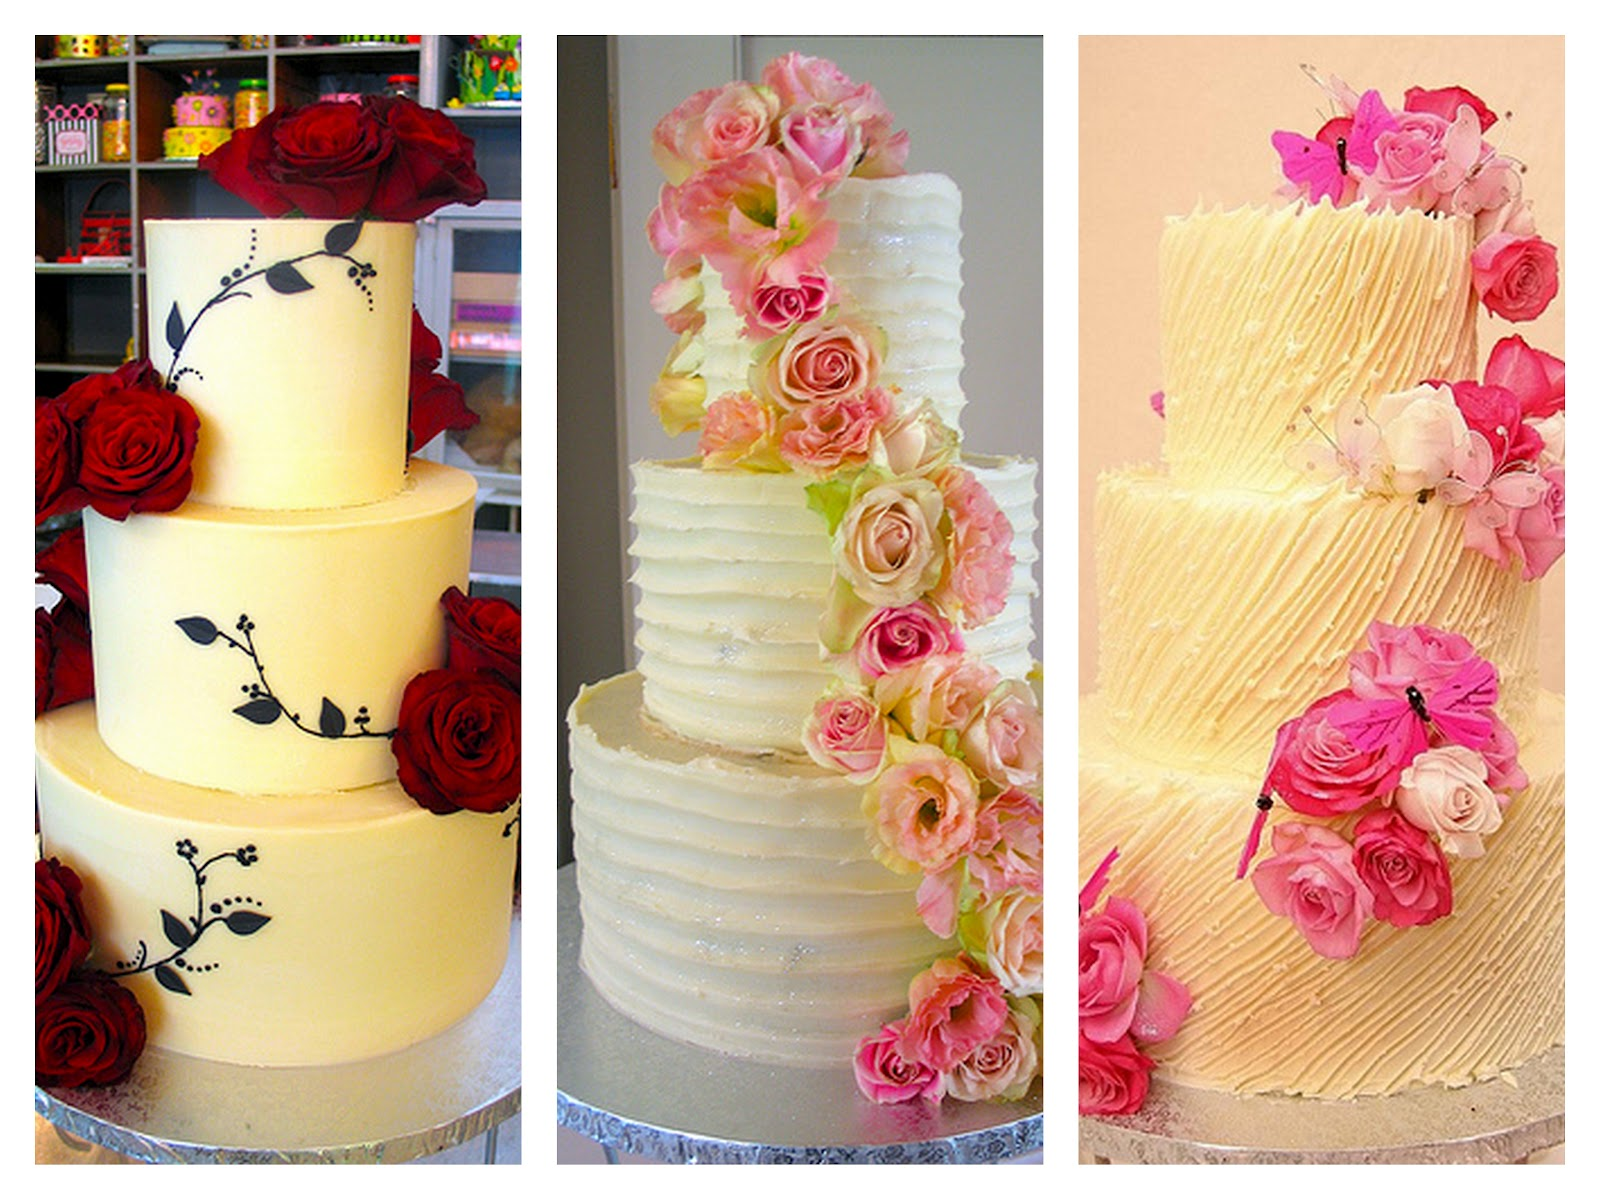 Kim Rose: Charly\'s Bakery - Cape Town